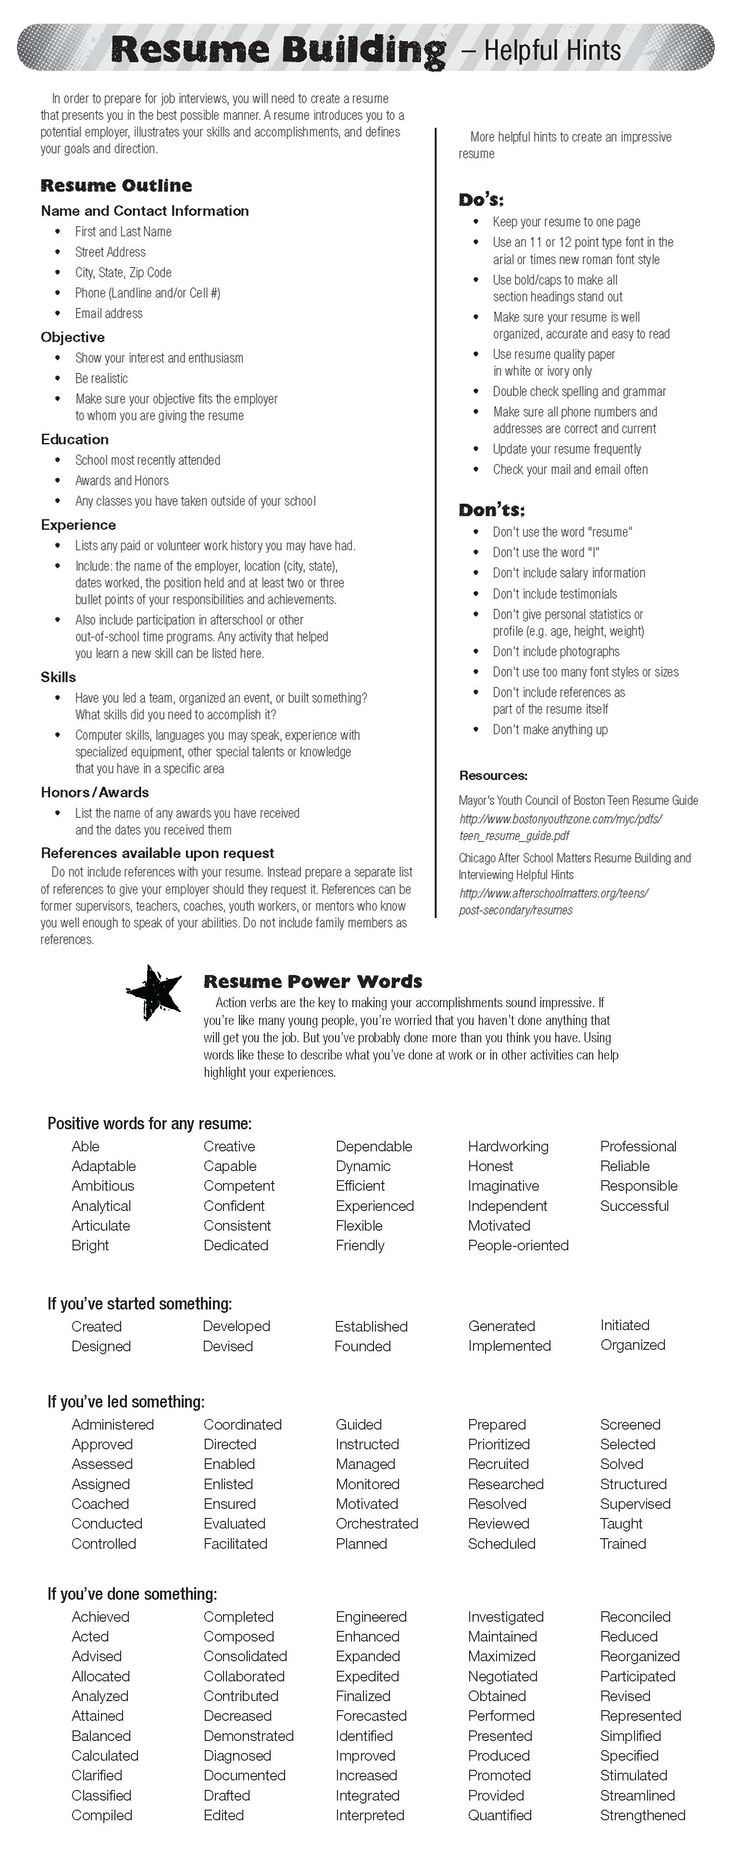 Opposenewapstandardsus  Splendid  Ideas About Resume On Pinterest  Cv Format Resume Cv And  With Handsome  Ideas About Resume On Pinterest  Cv Format Resume Cv And Resume Templates With Alluring Summary For Resume Examples Also Job Resume Objective In Addition Mba Resume Sample And Sample Resume Template As Well As Word Resume Additionally What Is A Resume For A Job From Pinterestcom With Opposenewapstandardsus  Handsome  Ideas About Resume On Pinterest  Cv Format Resume Cv And  With Alluring  Ideas About Resume On Pinterest  Cv Format Resume Cv And Resume Templates And Splendid Summary For Resume Examples Also Job Resume Objective In Addition Mba Resume Sample From Pinterestcom